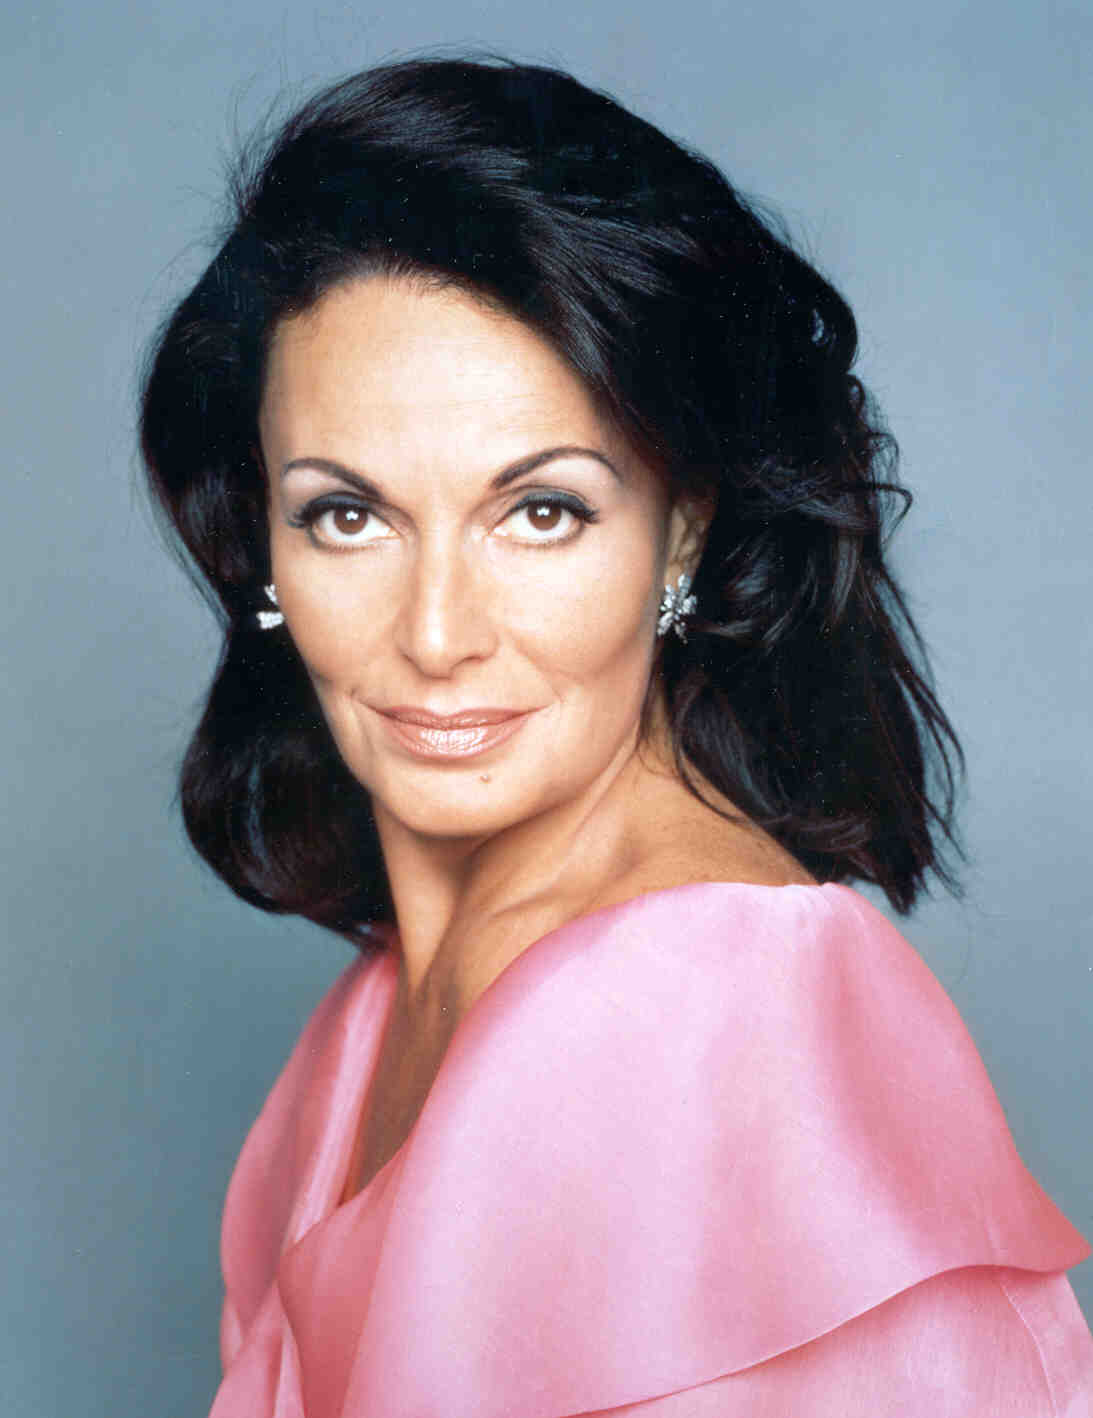 55454f05f8d01 Diane Von Furstenberg and the invention of the Iconic Wrap dress